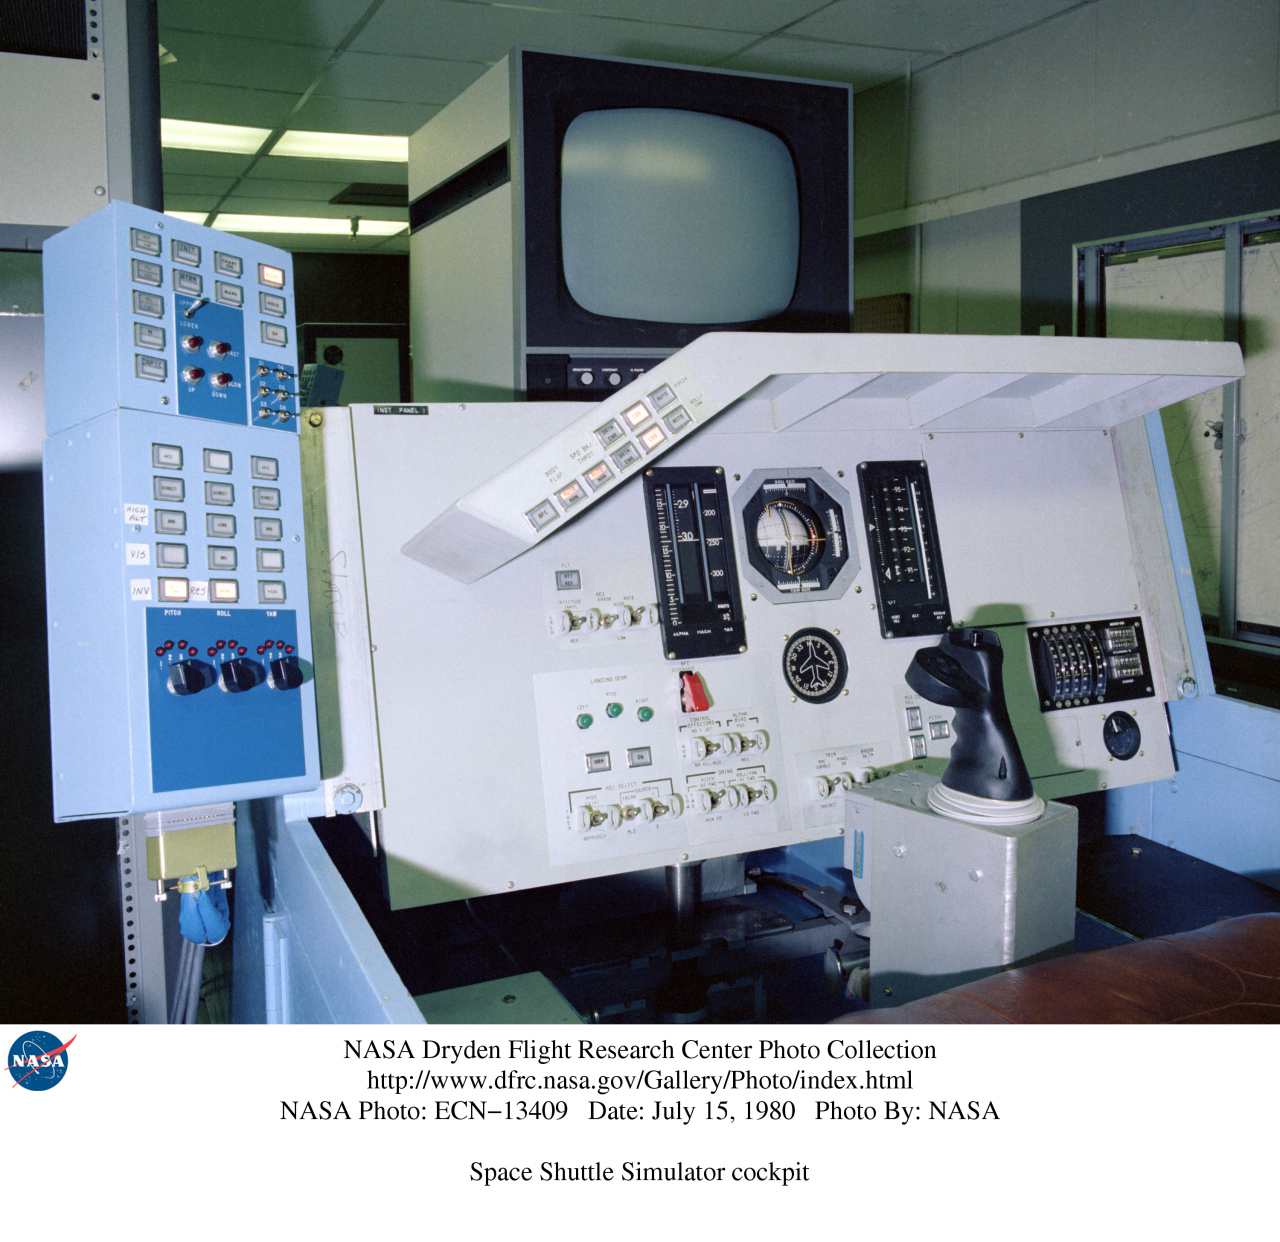 NASA Dryden Flight Simulator Photo Collection